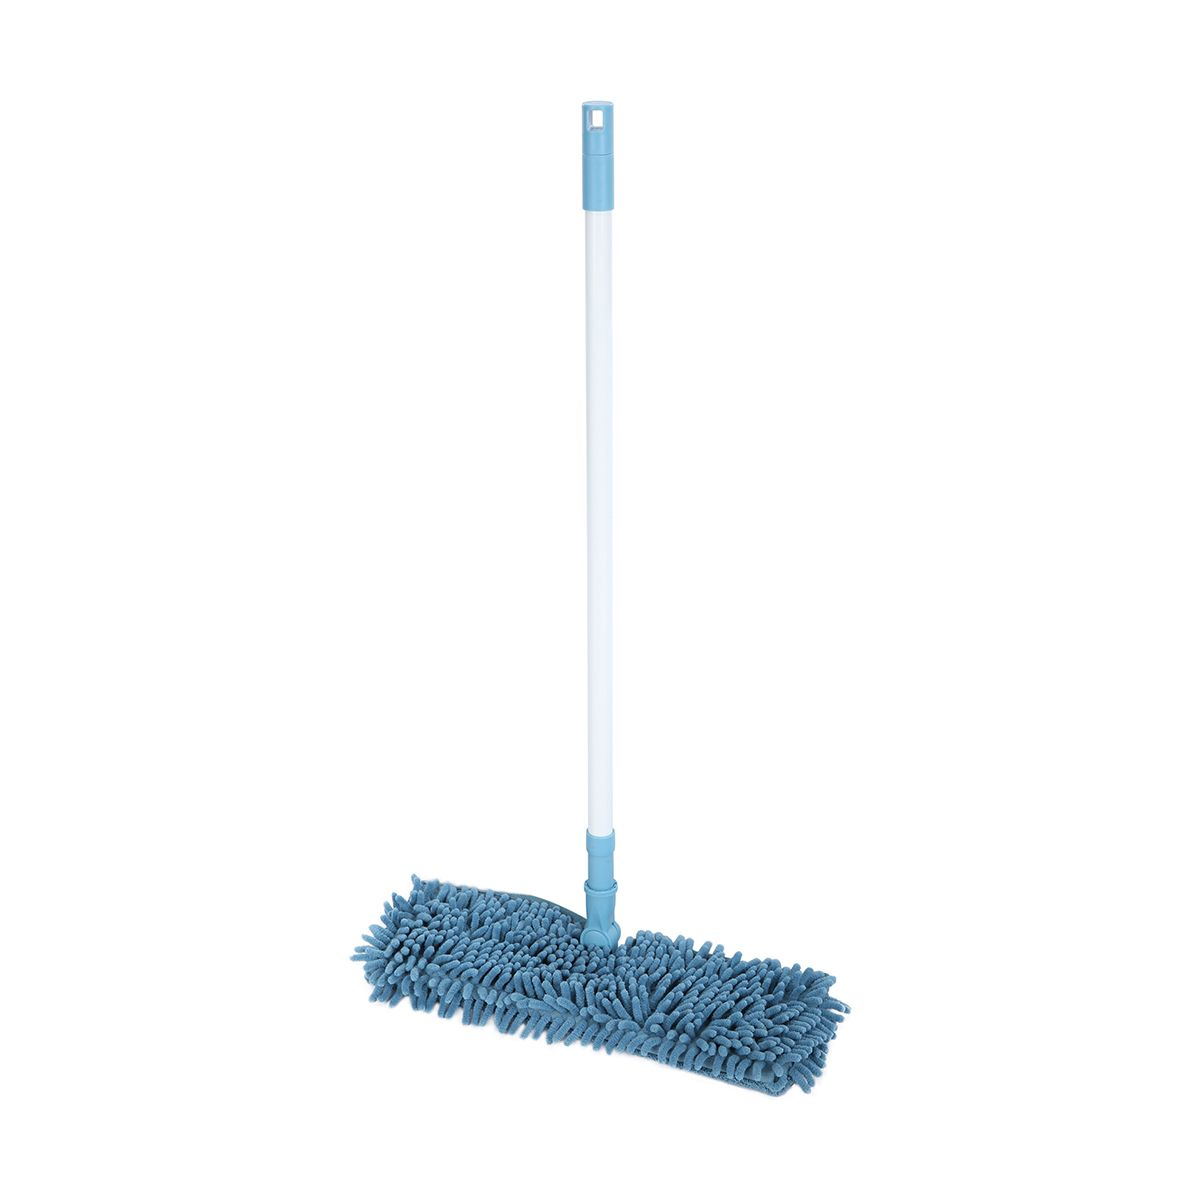 2 In 1 Chenille Flat Mop Kmart Washable Pads Mops Chenille